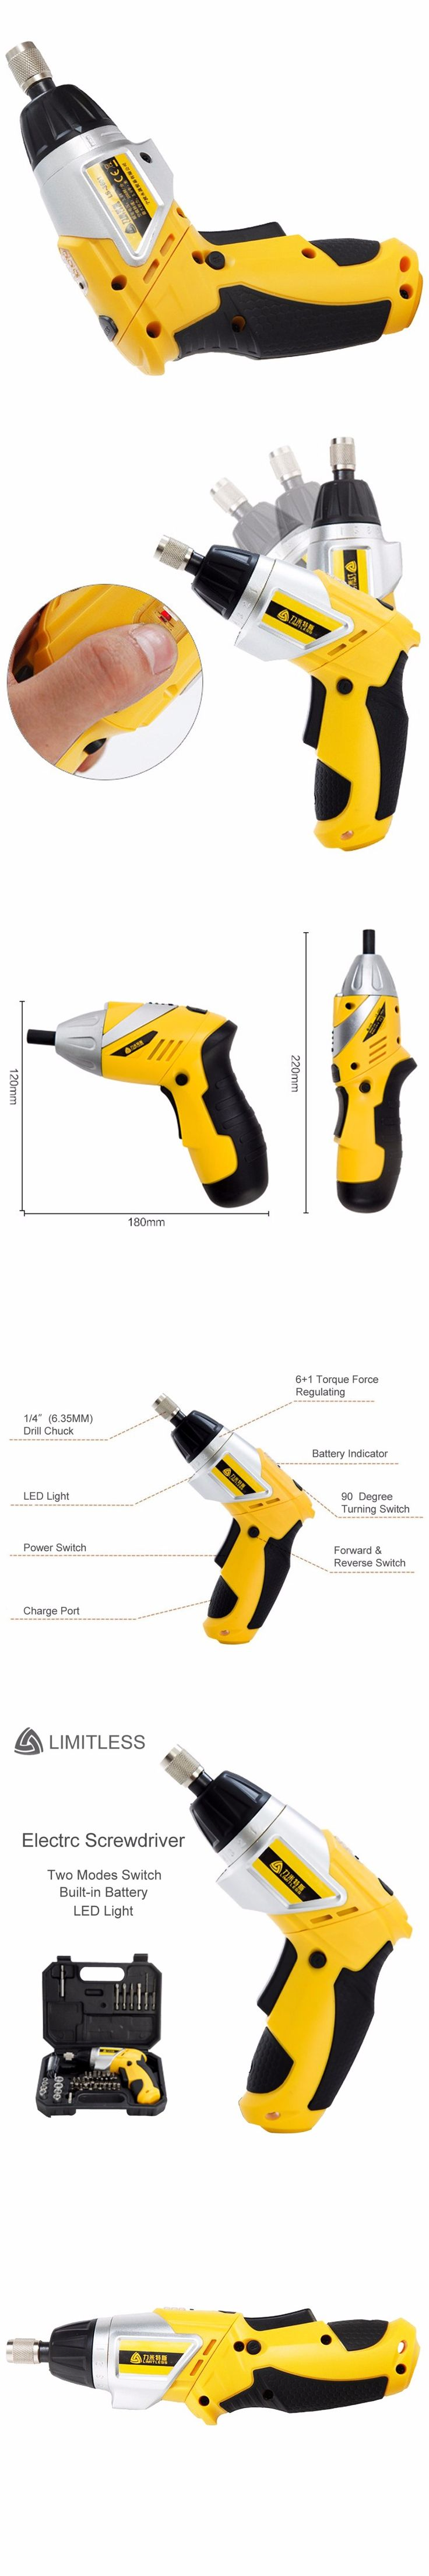 3.6V Rechargeable Lithium Battery Electric Screwdriver Kit 90 Degree Rotary Household Electric Drill